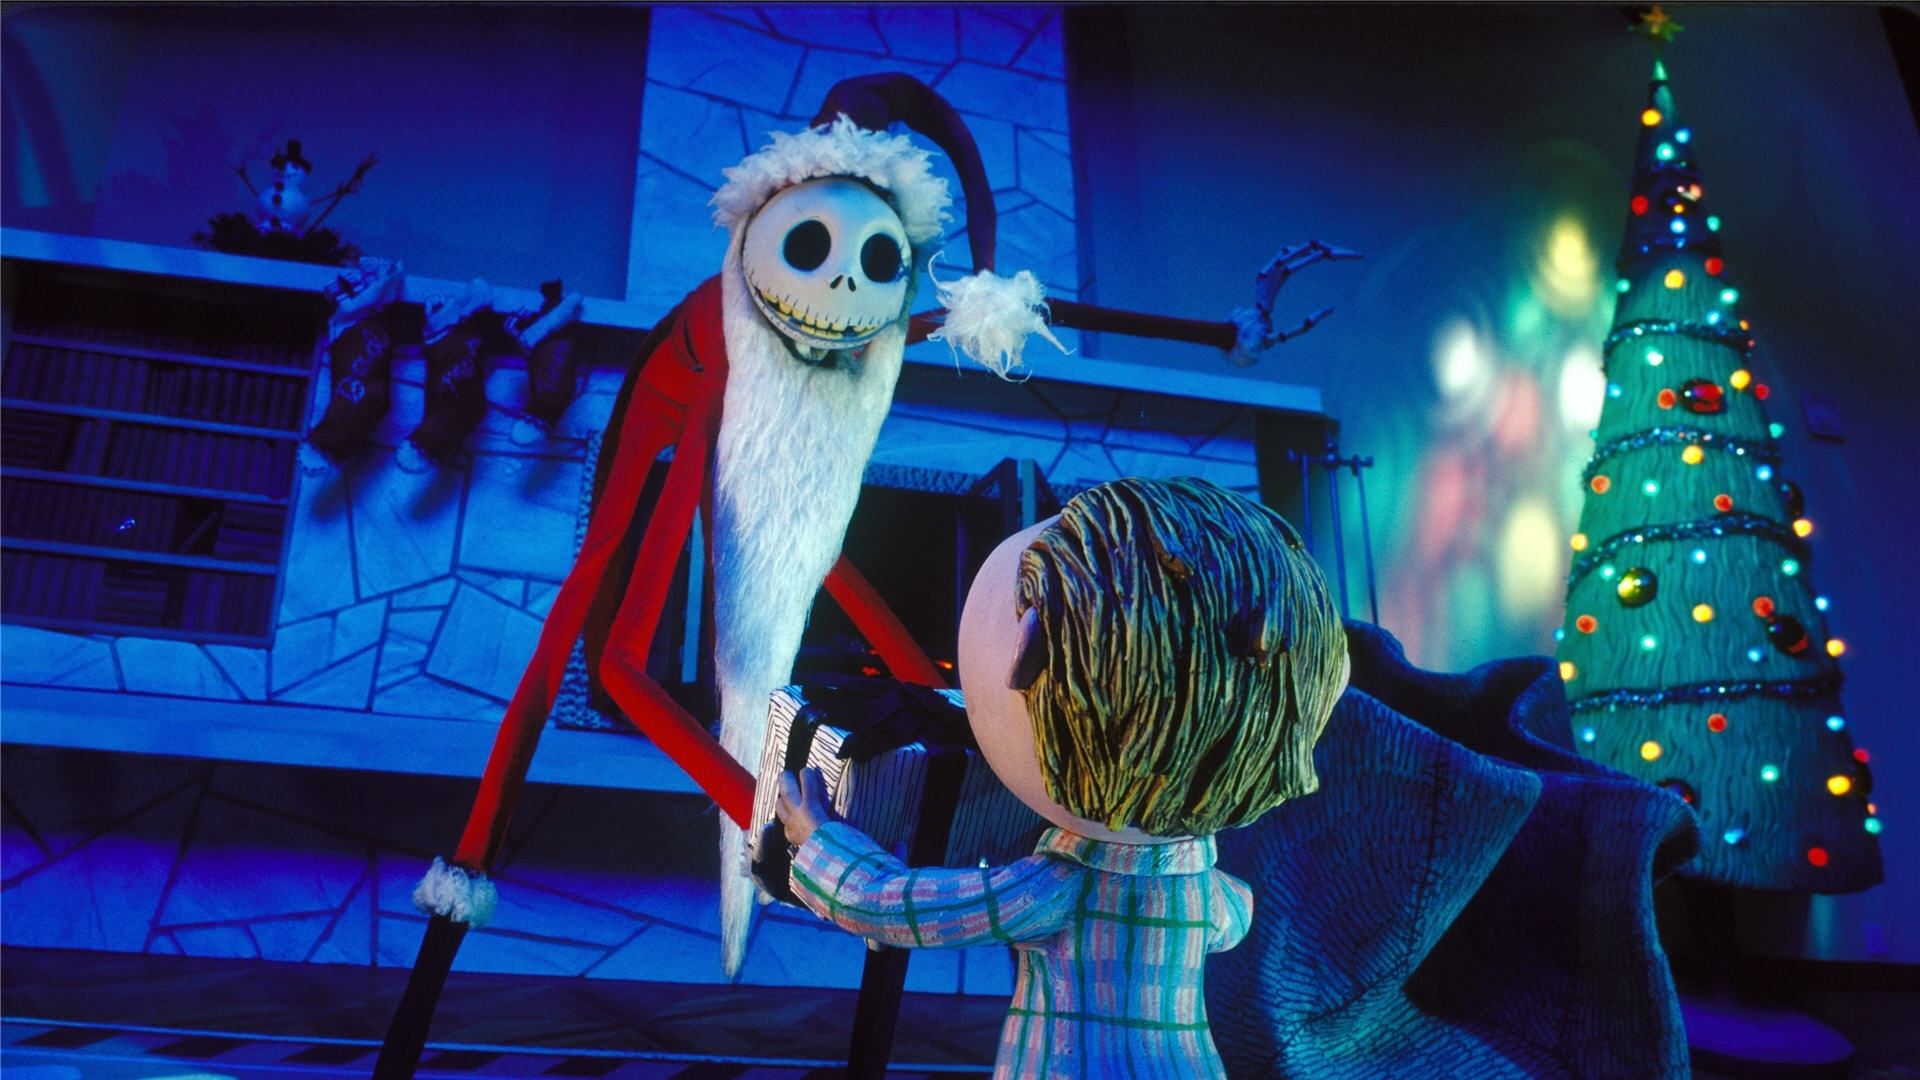 nightmare before christmas jack santa wallpaper images & pictures